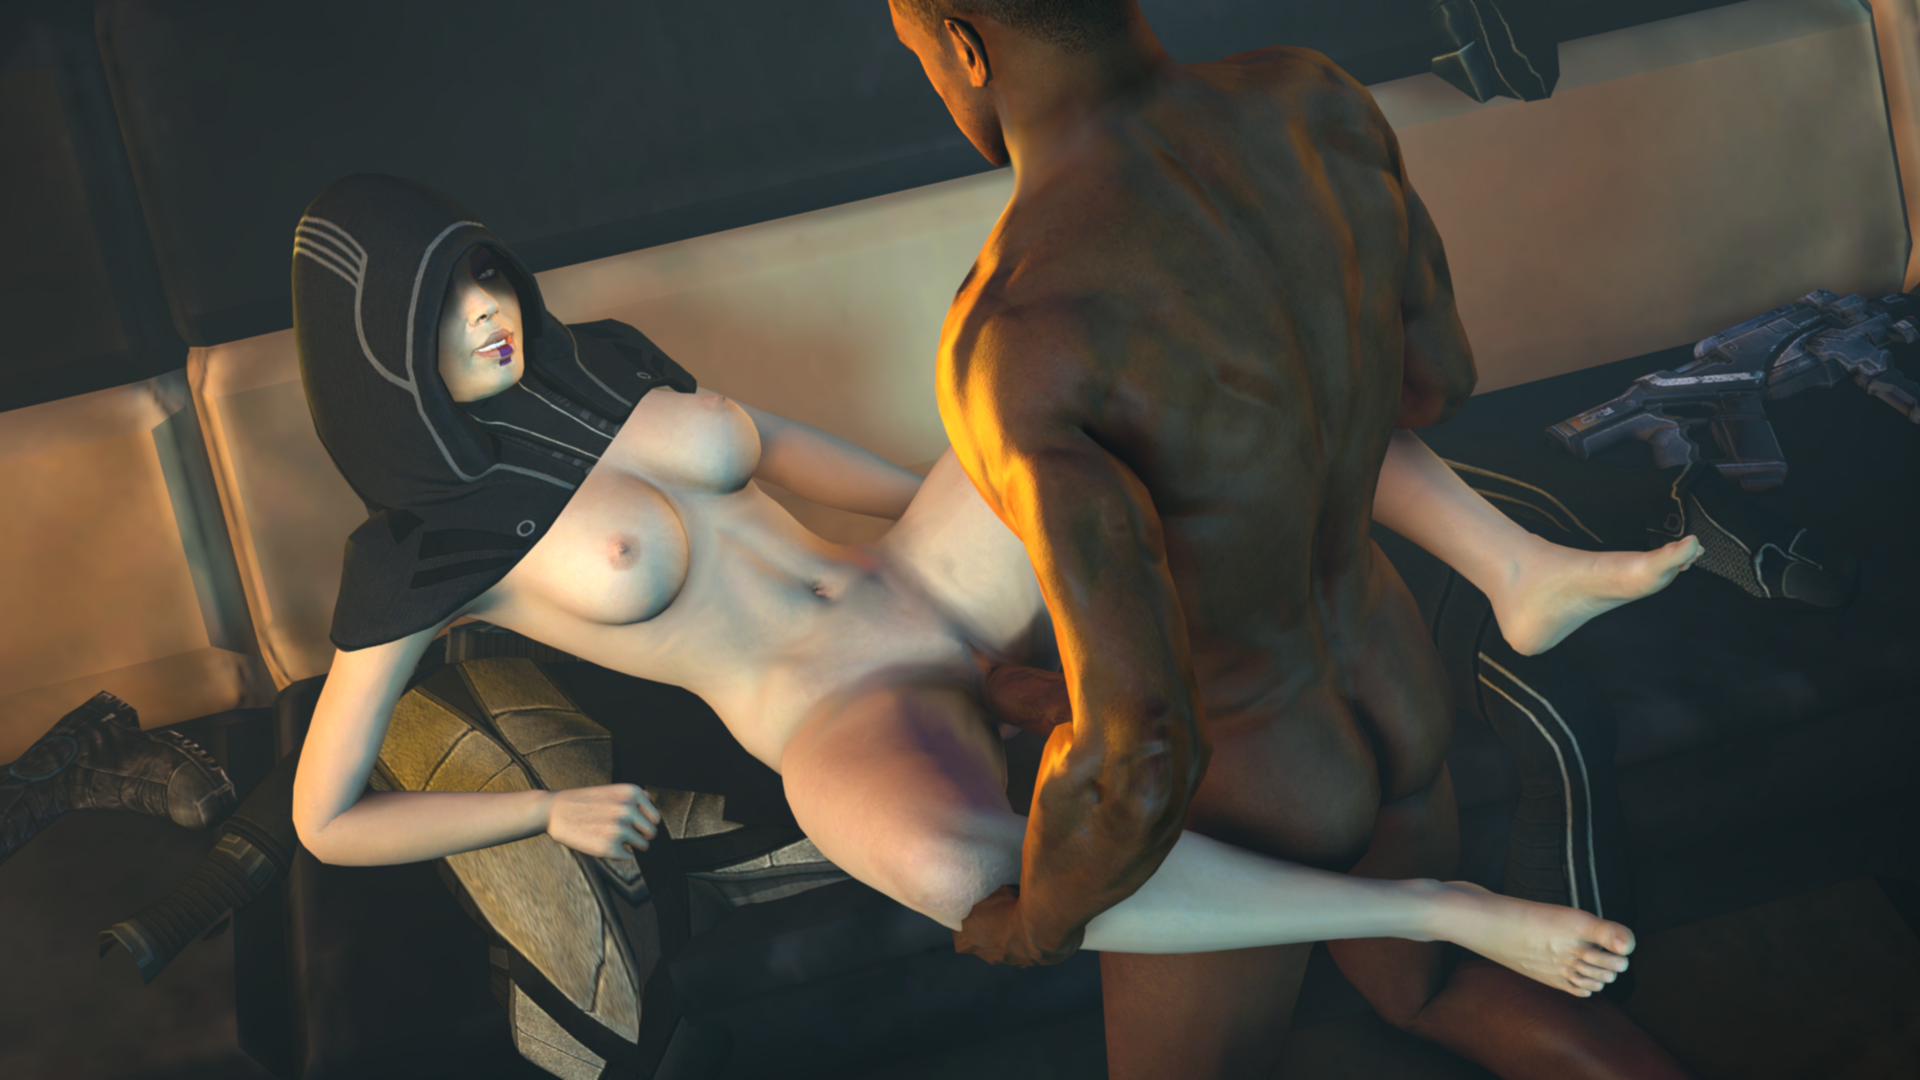 Mass effect 1 porn porncraft gallery